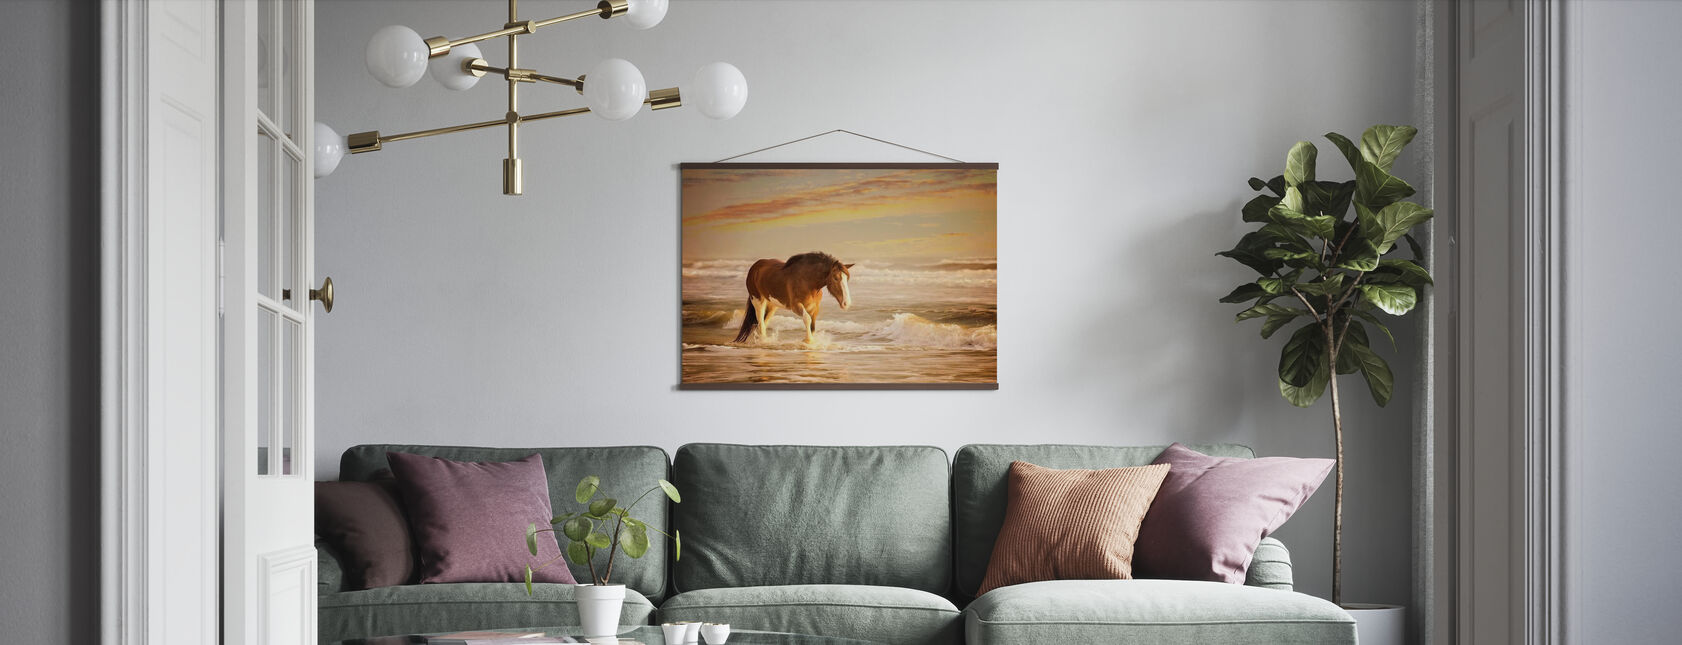 Sunkissed Horses - Poster - Living Room